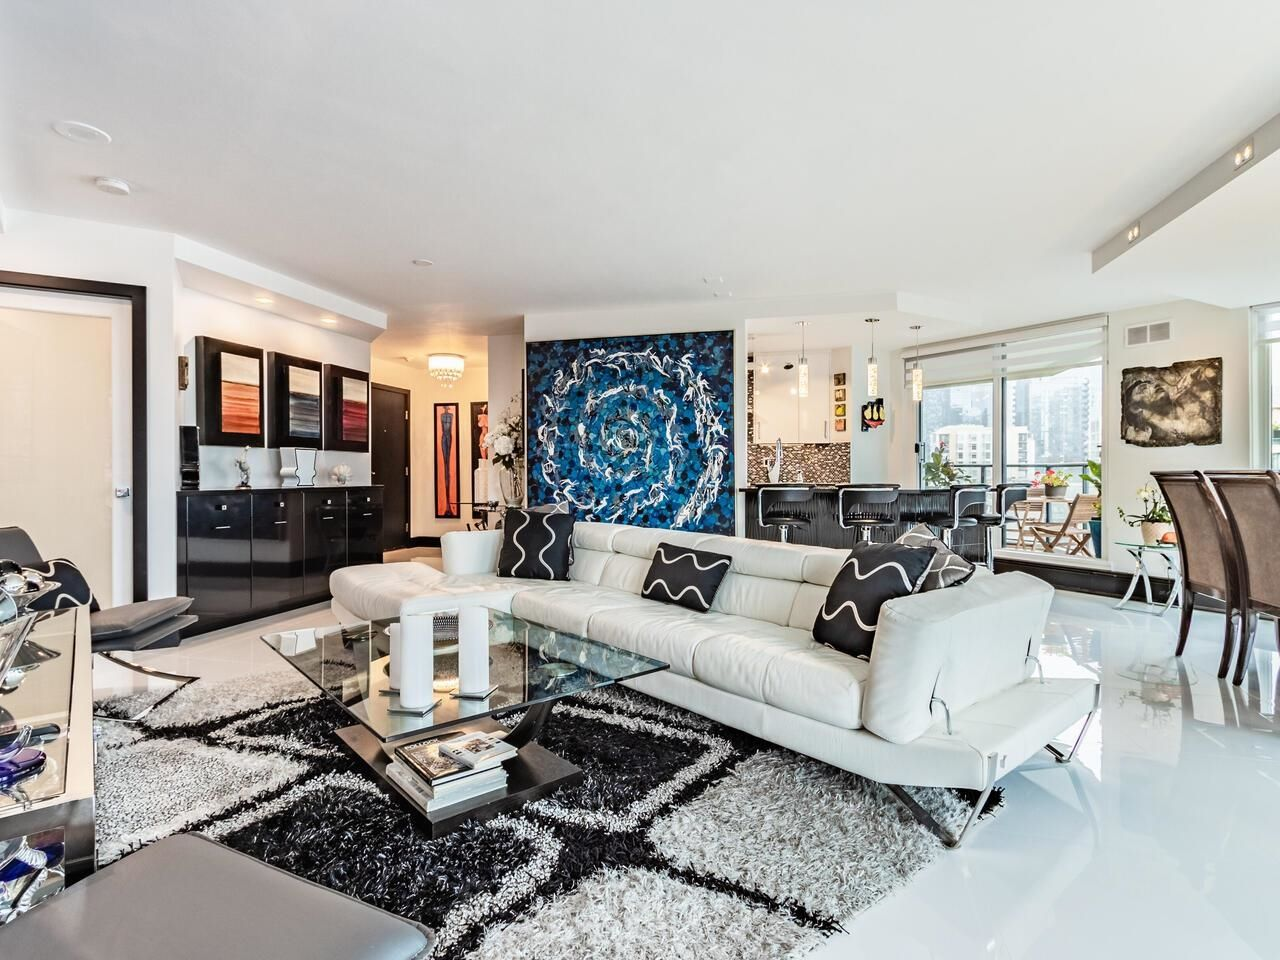 Main Photo: 1505 1010 BURNABY STREET in Vancouver: West End VW Condo for sale (Vancouver West)  : MLS®# R2613983